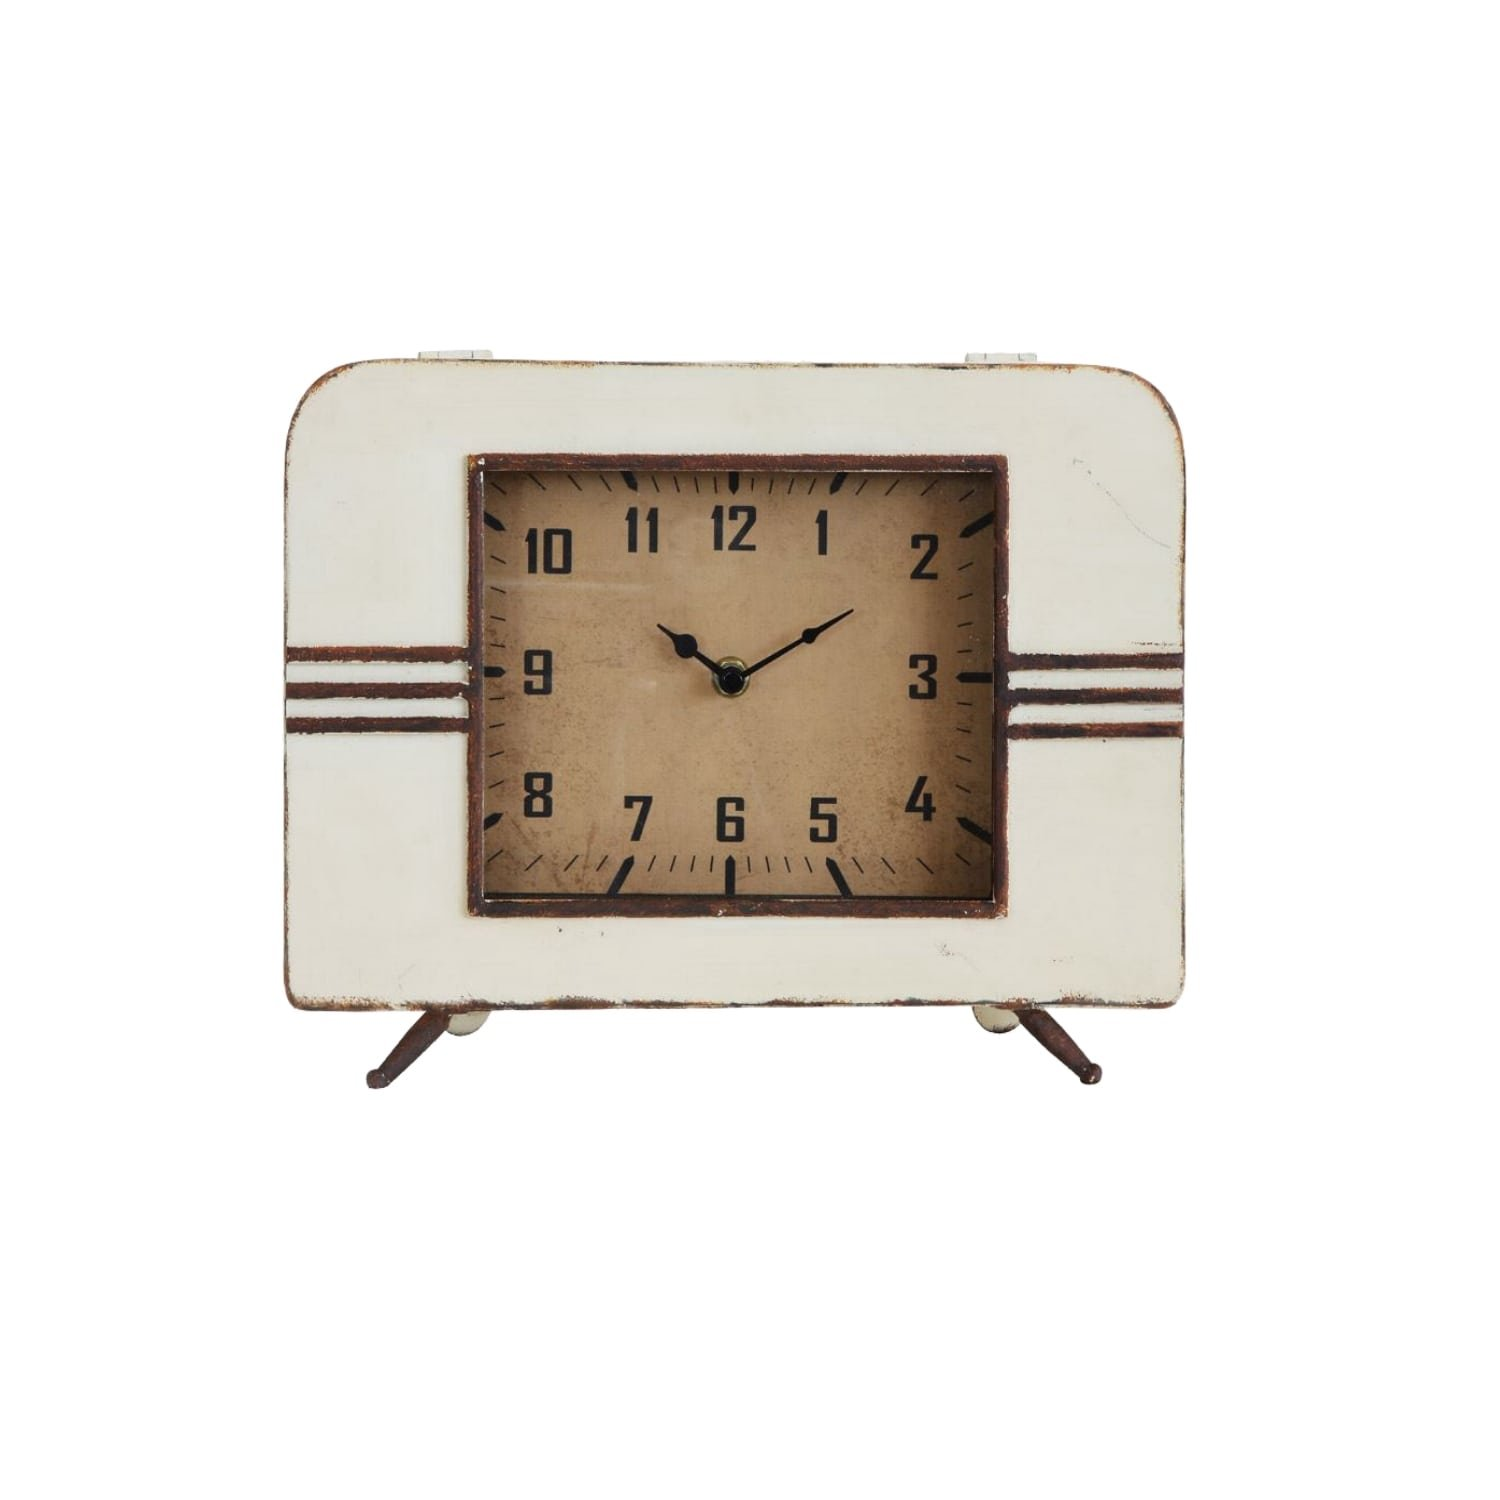 The King's Bay Mid Century Retro Style Metal Mantel Clock Hand Made Accurate Works